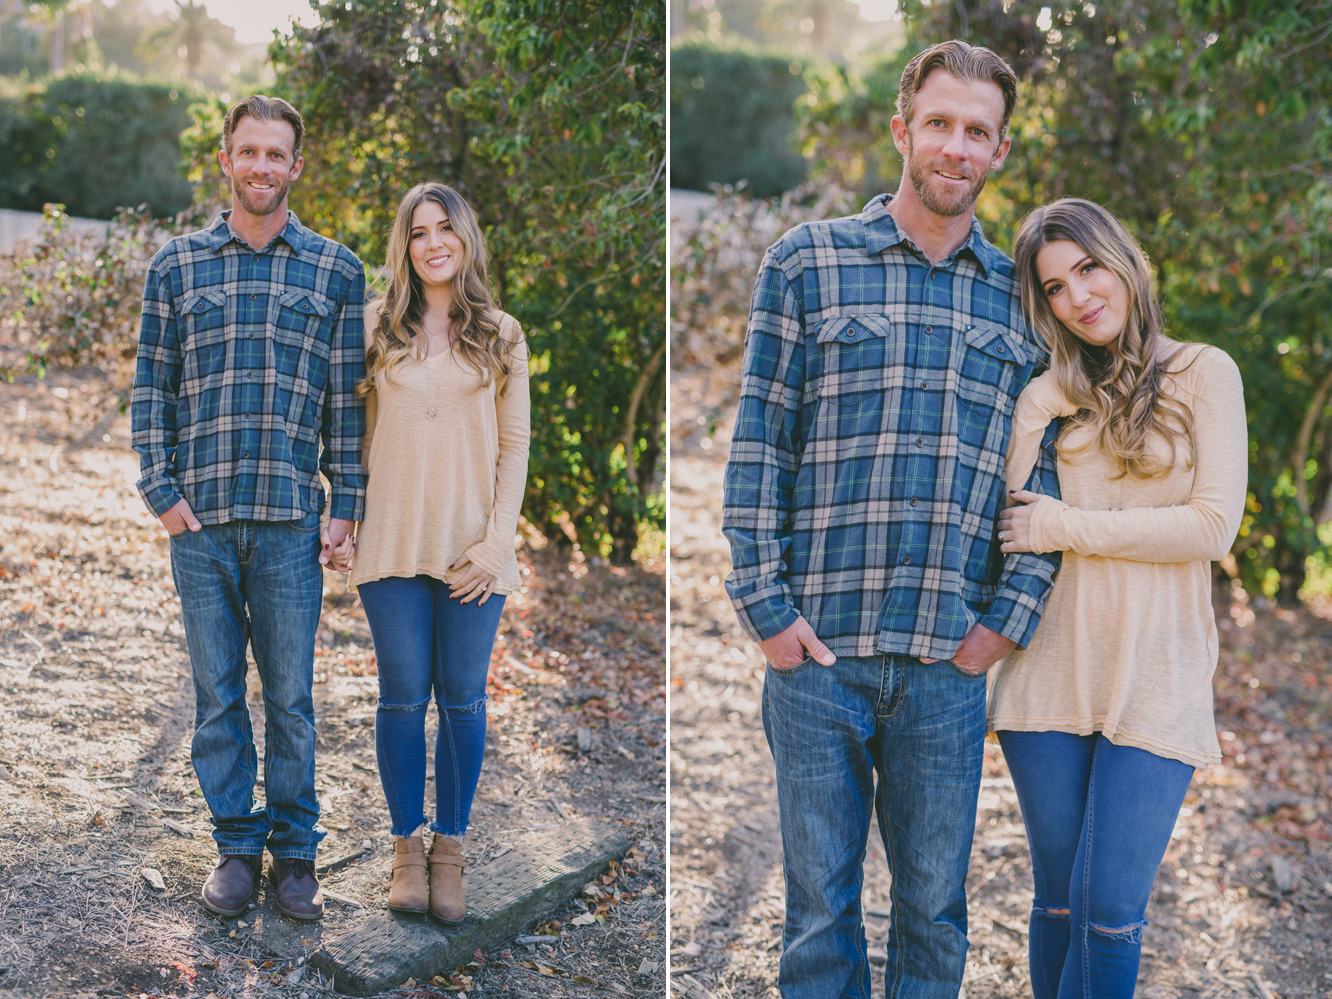 palos-verdes-engagement-photos-1010